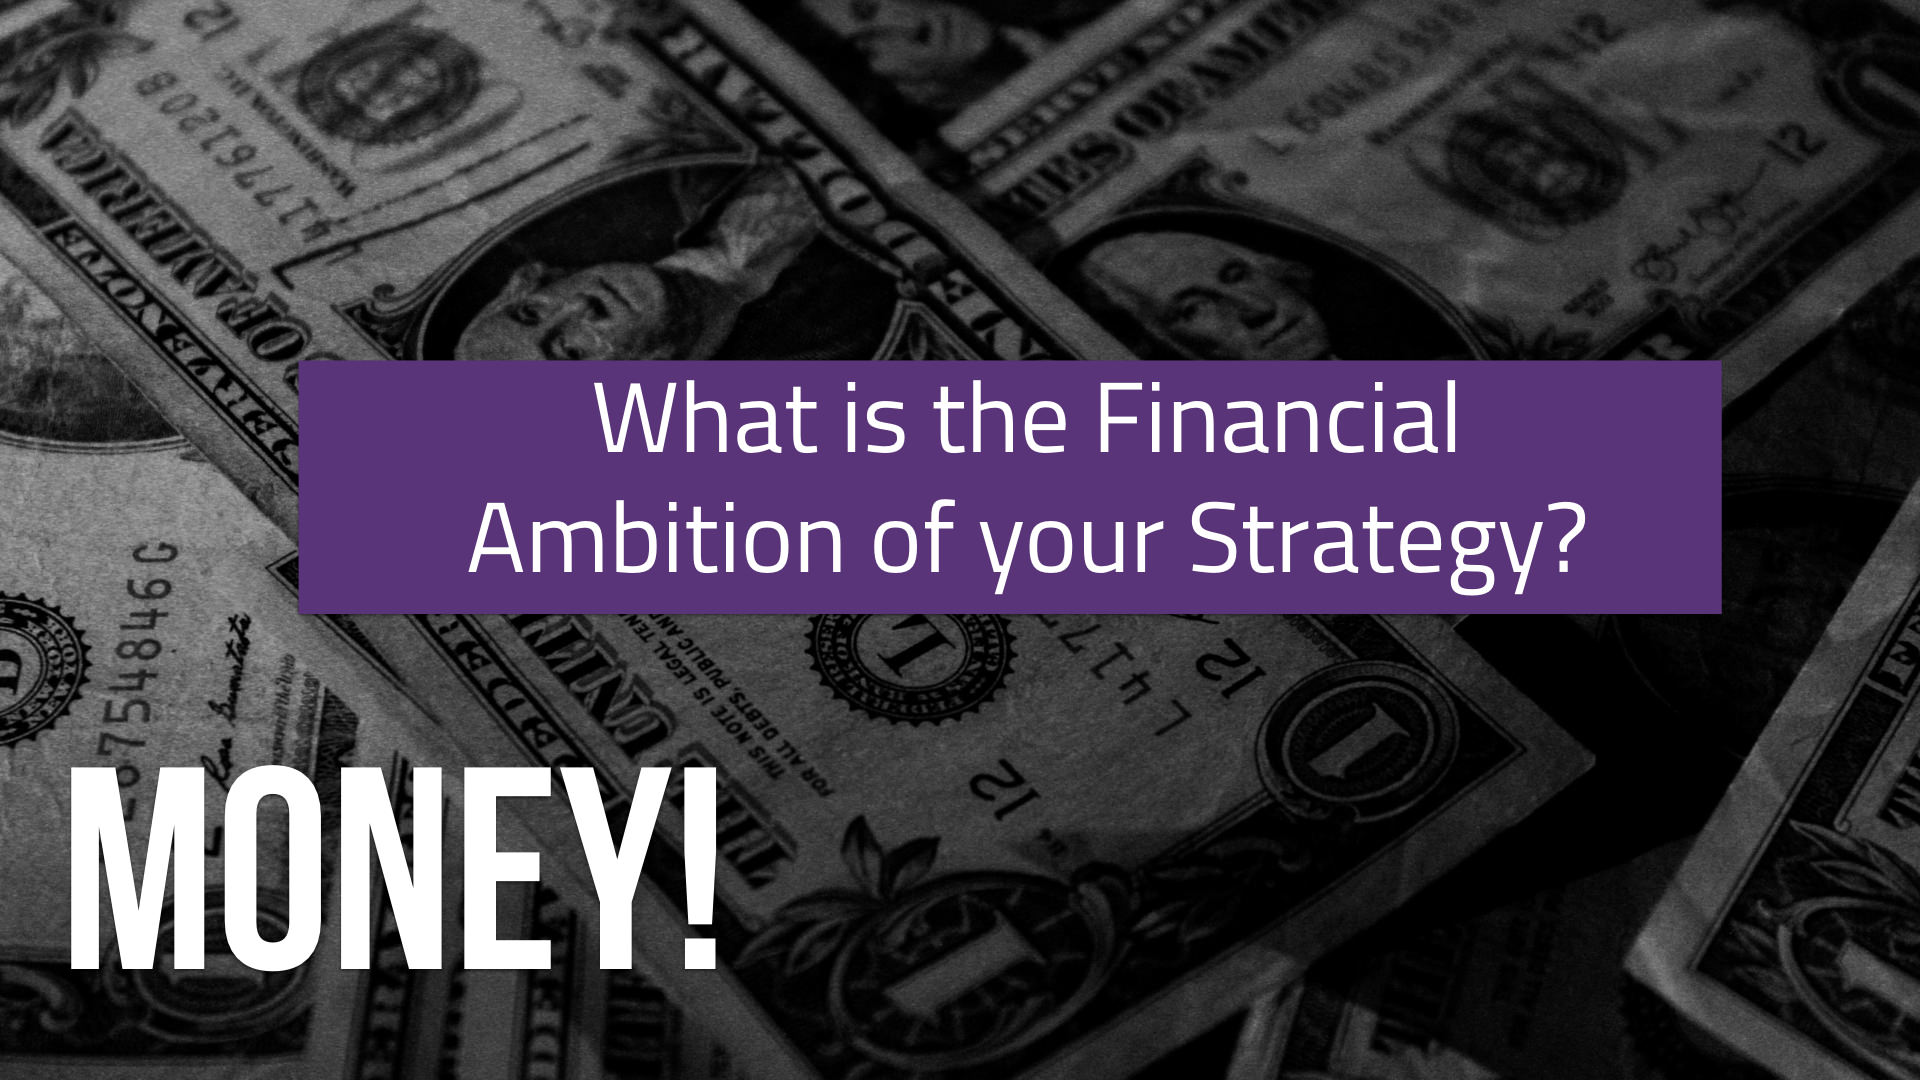 Financial Ambition of Your Strategy